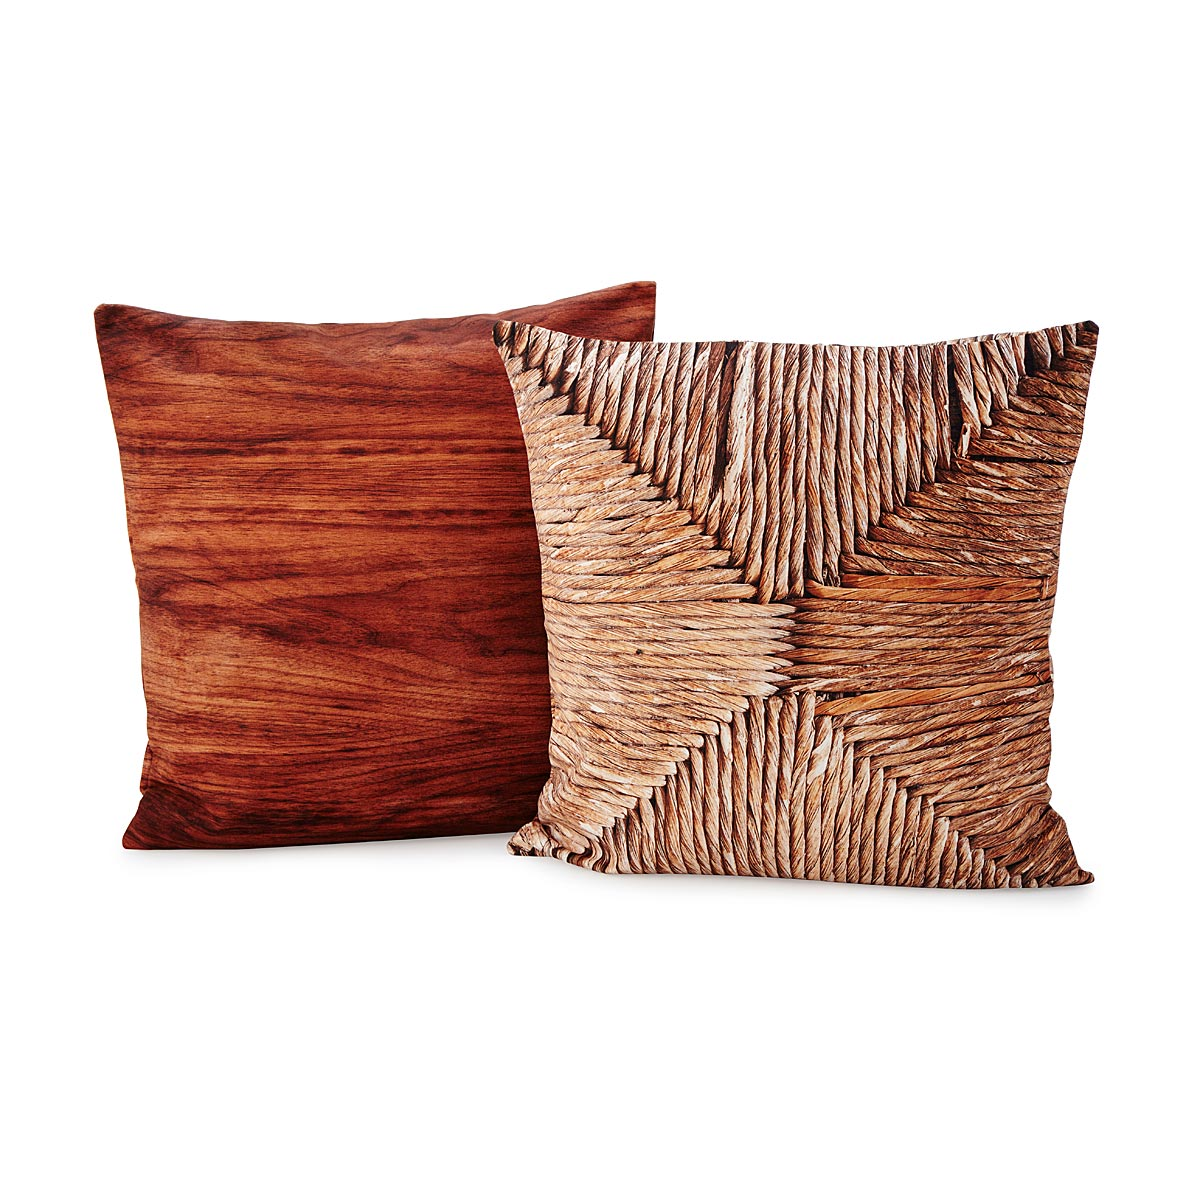 wood u0026 wicker printed throw pillows - Toss Pillows